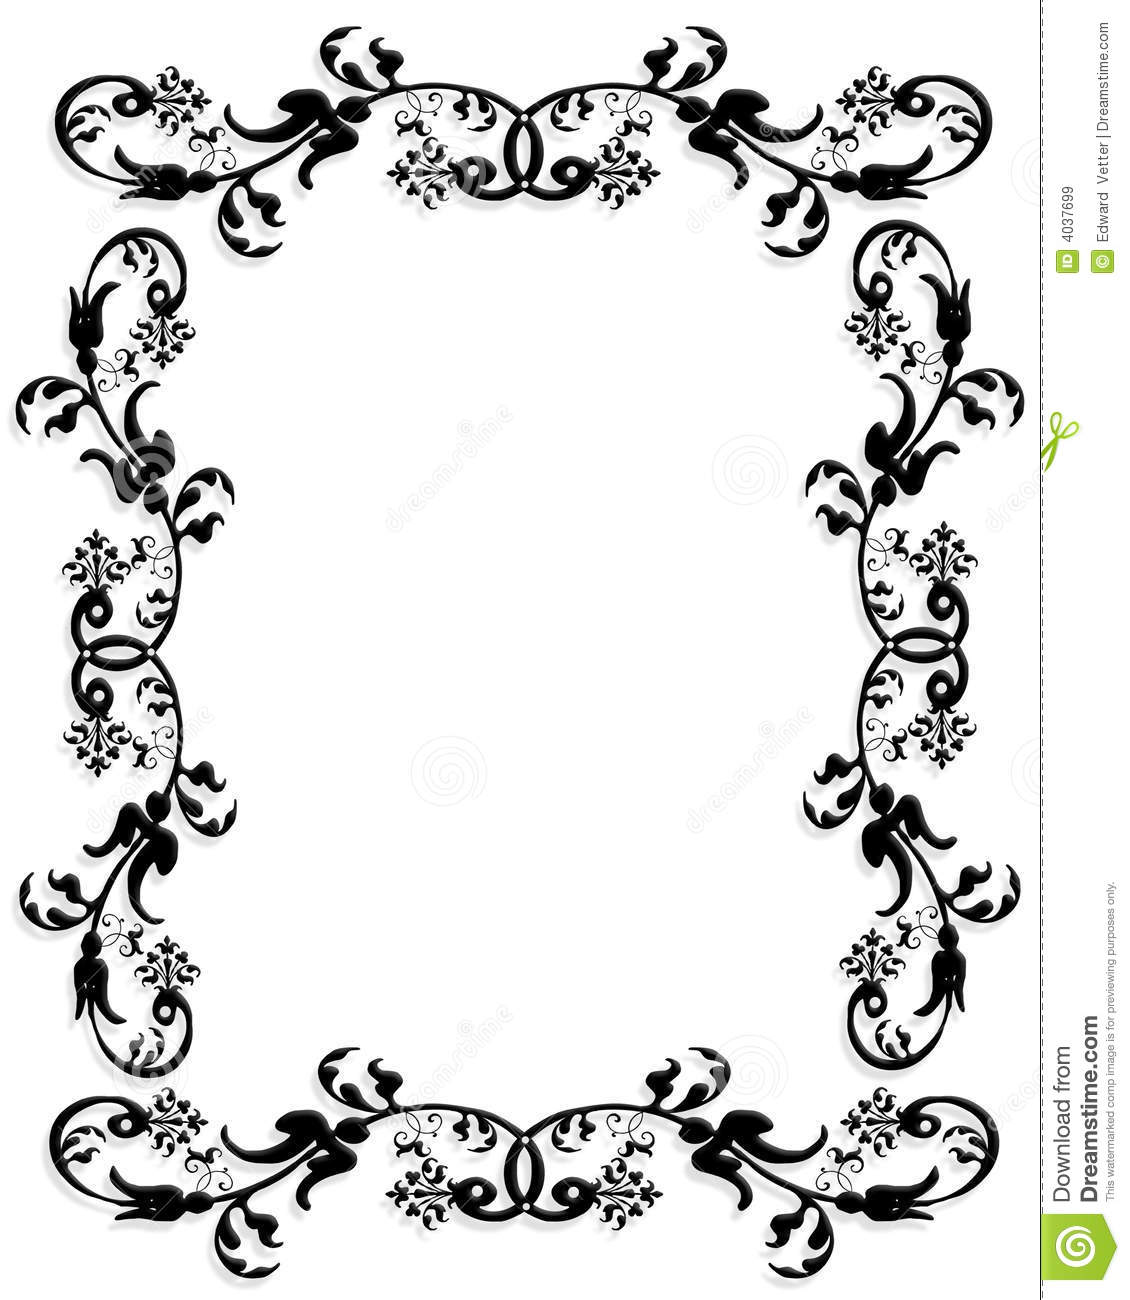 Butterflies likewise Royalty Free Stock Images 3d Border Frame Black Image4037699 additionally 449093394062712896 together with Peanuts Gang further Wedding Coloring Pages. on valentines day crafts